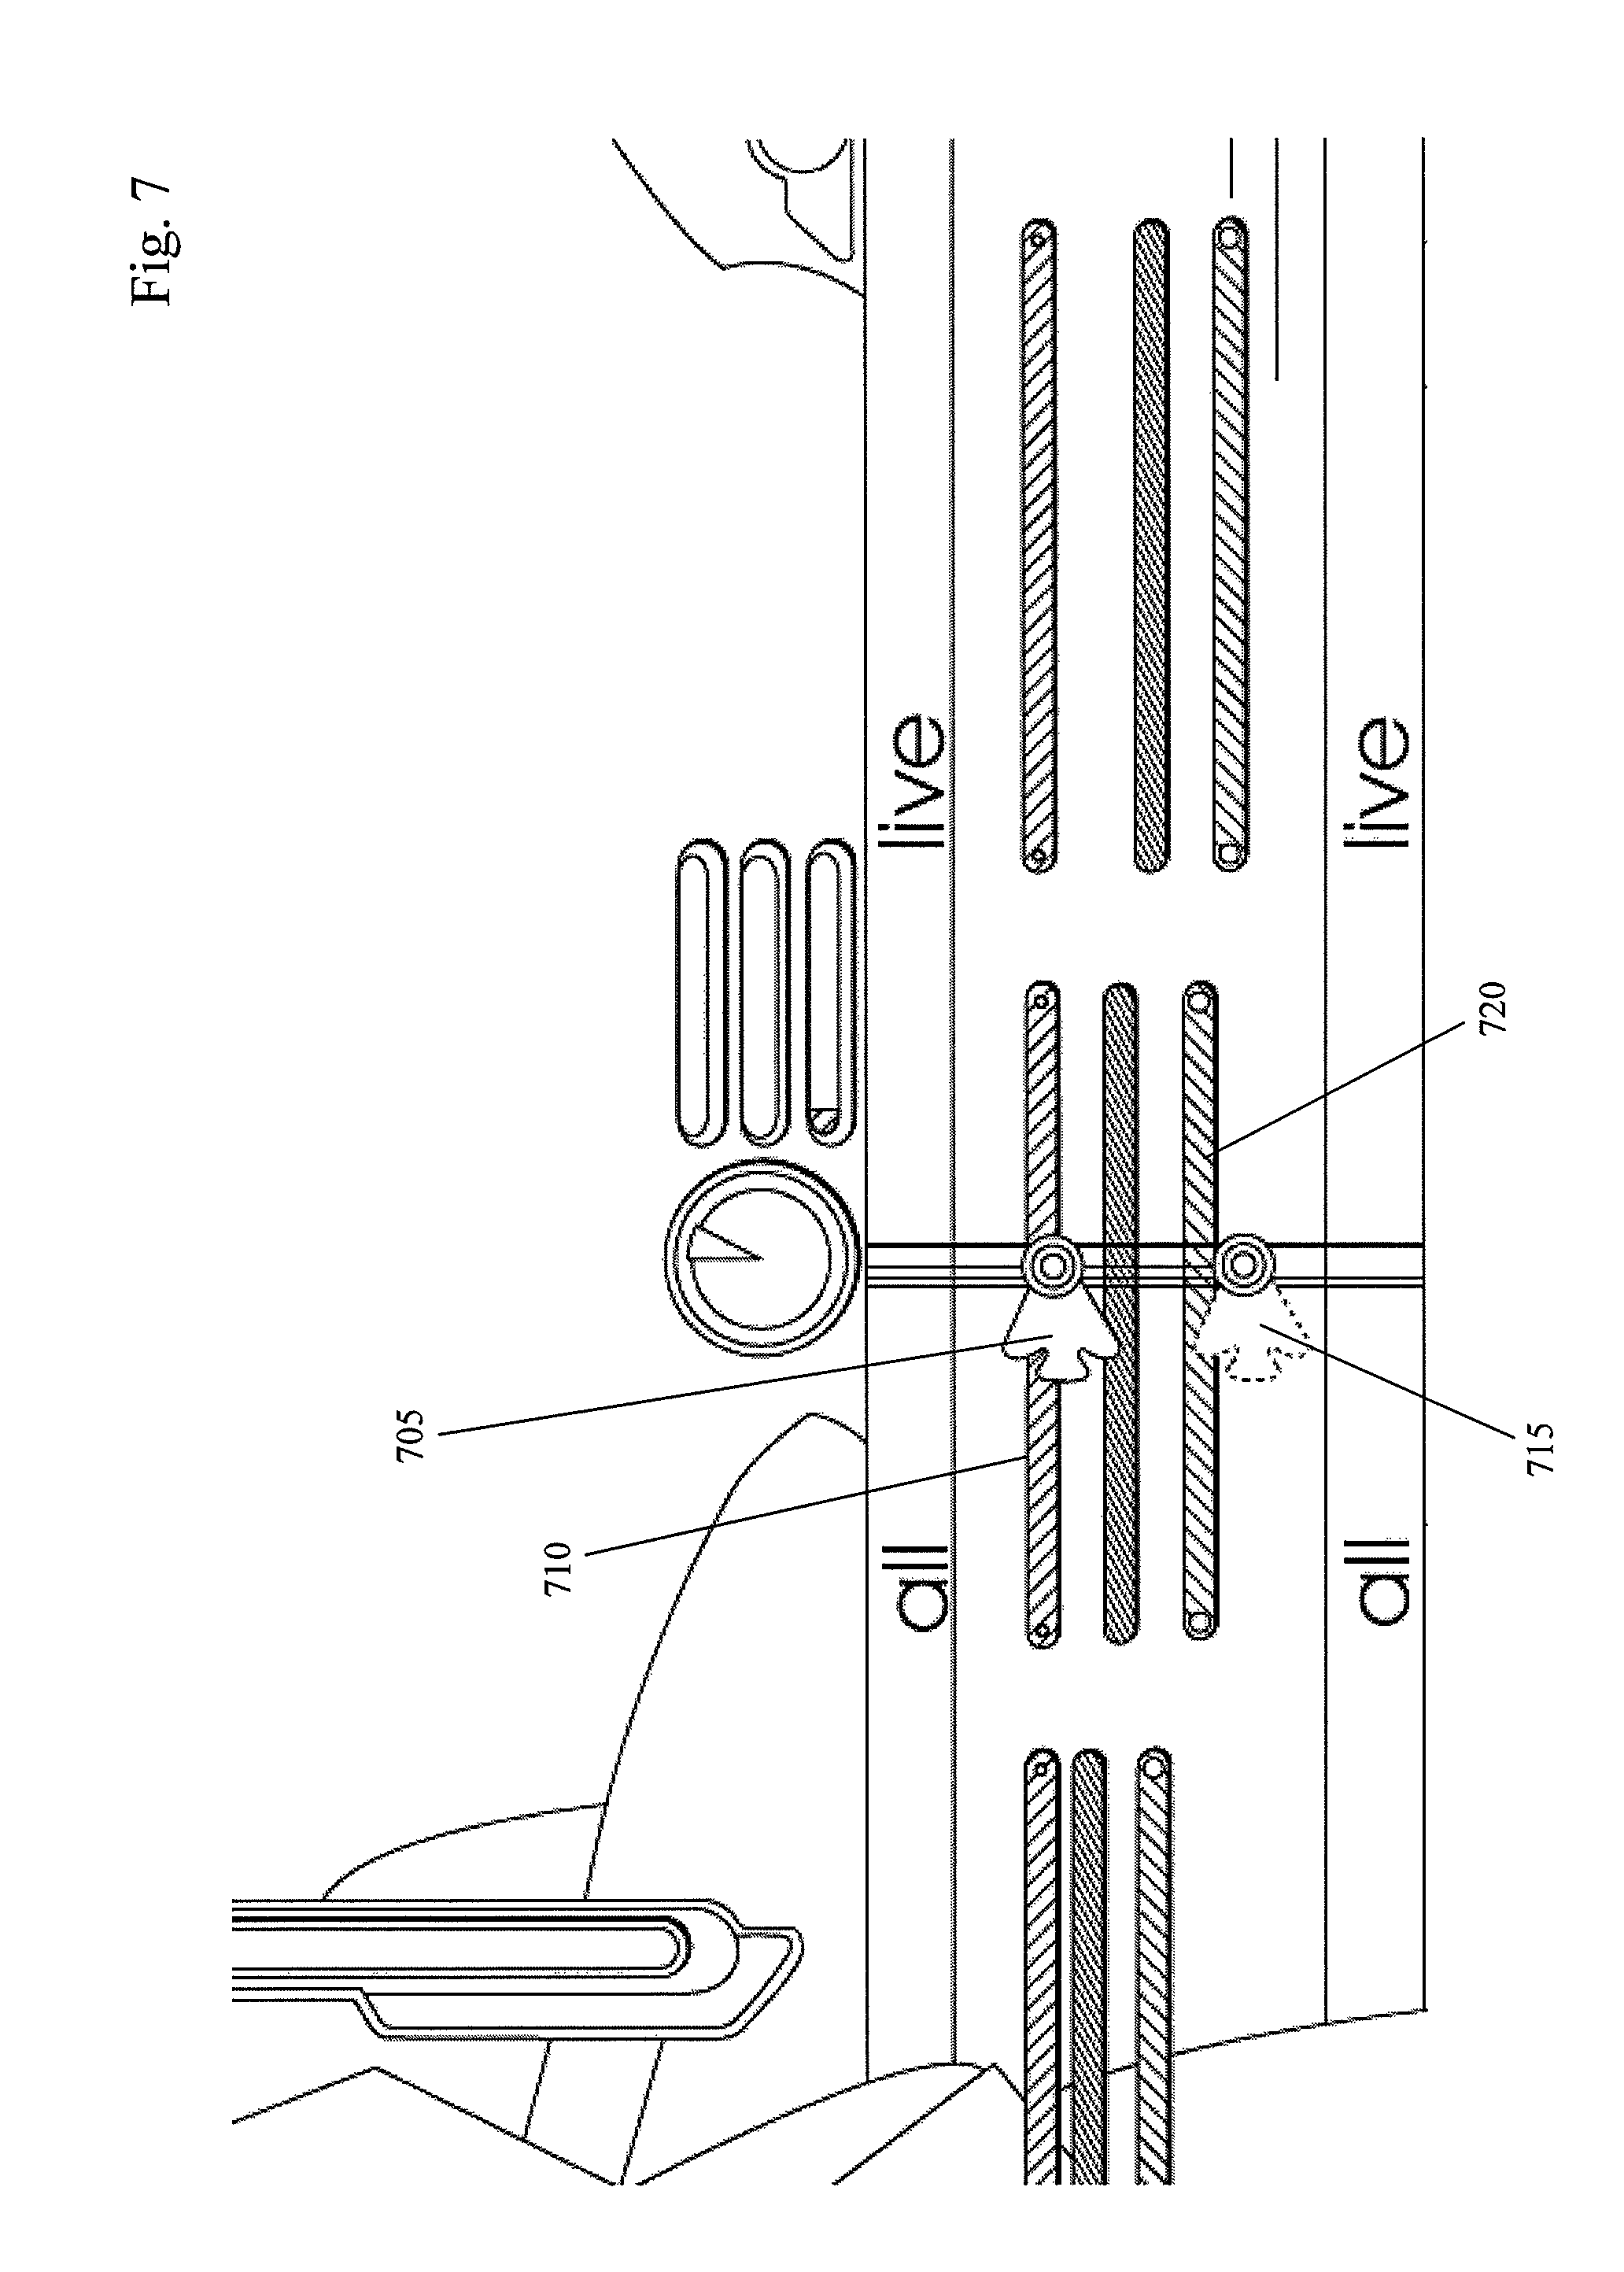 Patent US 8,449,360 B2 on